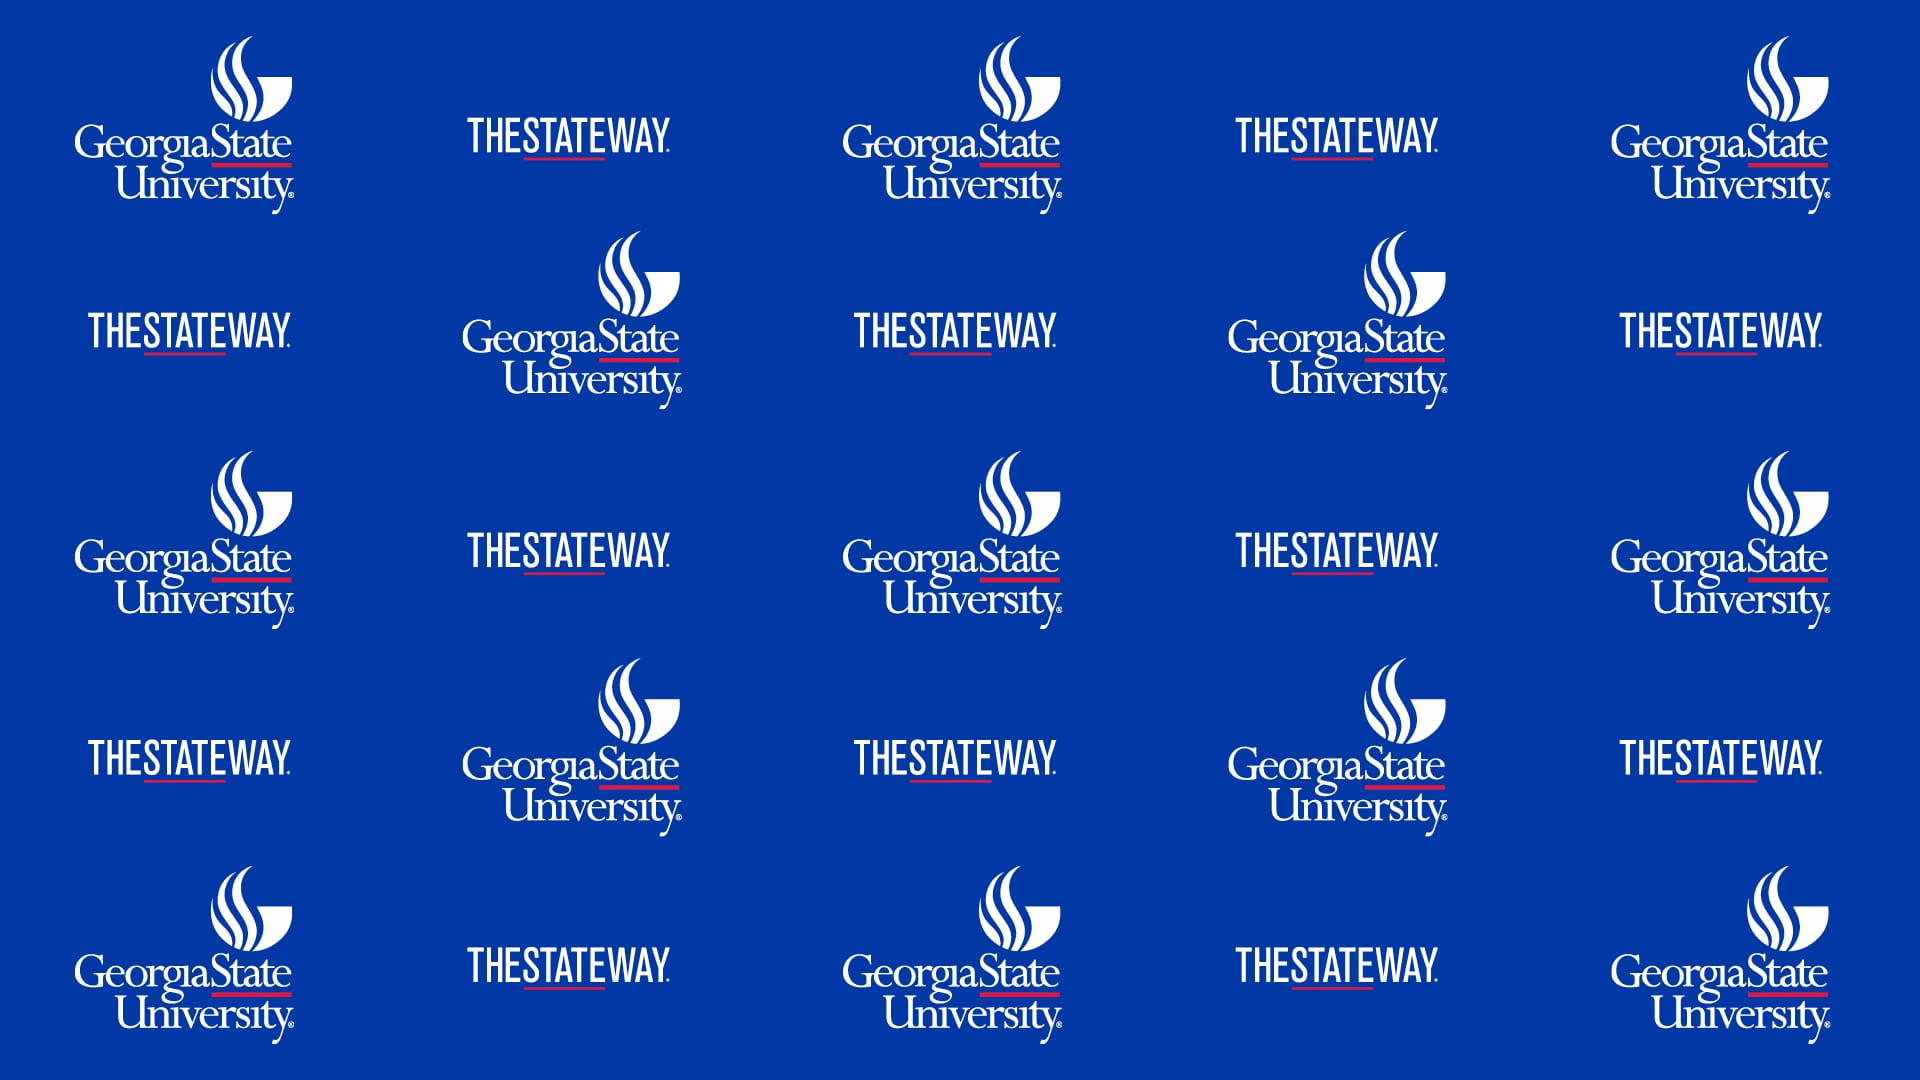 Repeated rows of alternating TheStateWay and Georgia State Logos